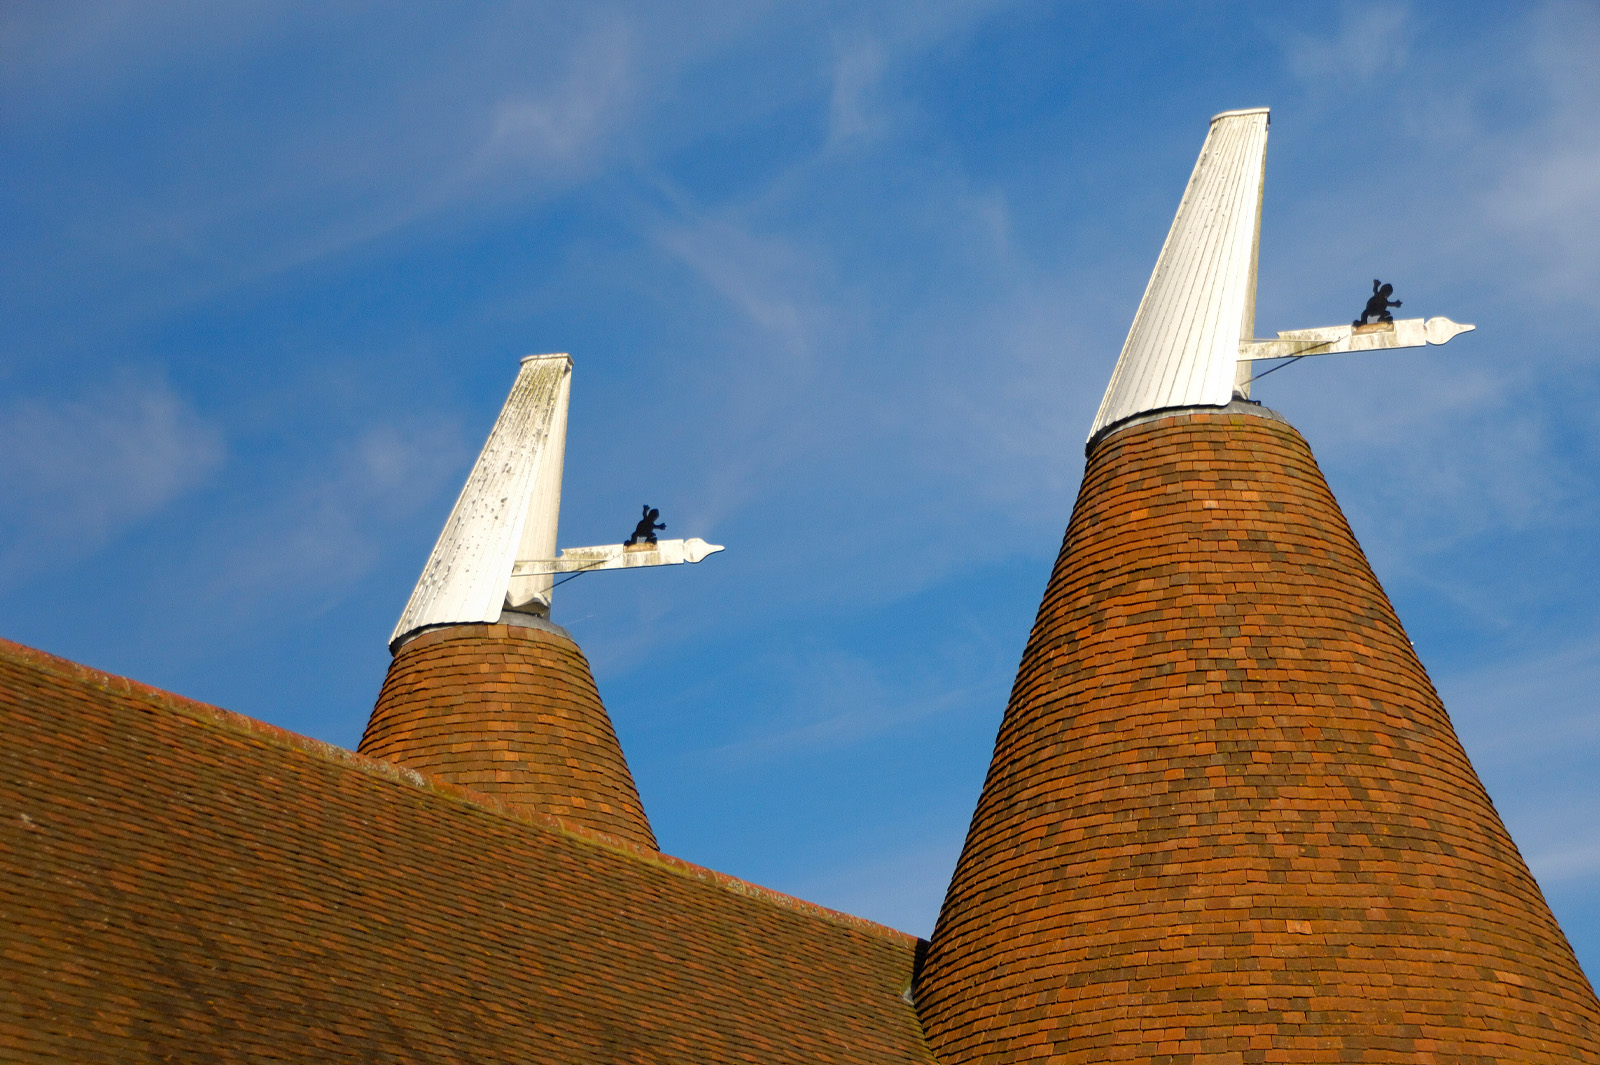 Typical Oast House Roofs - photo by Mike Bartlett